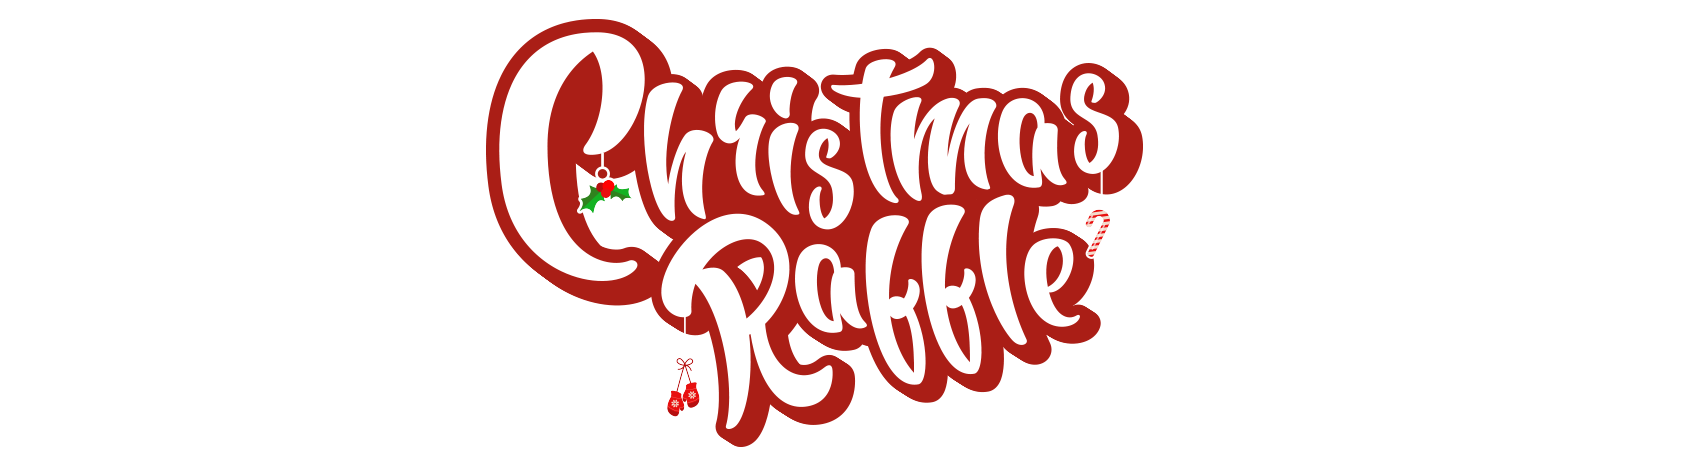 Raffle clipart we are the champion. Christmas website logo st